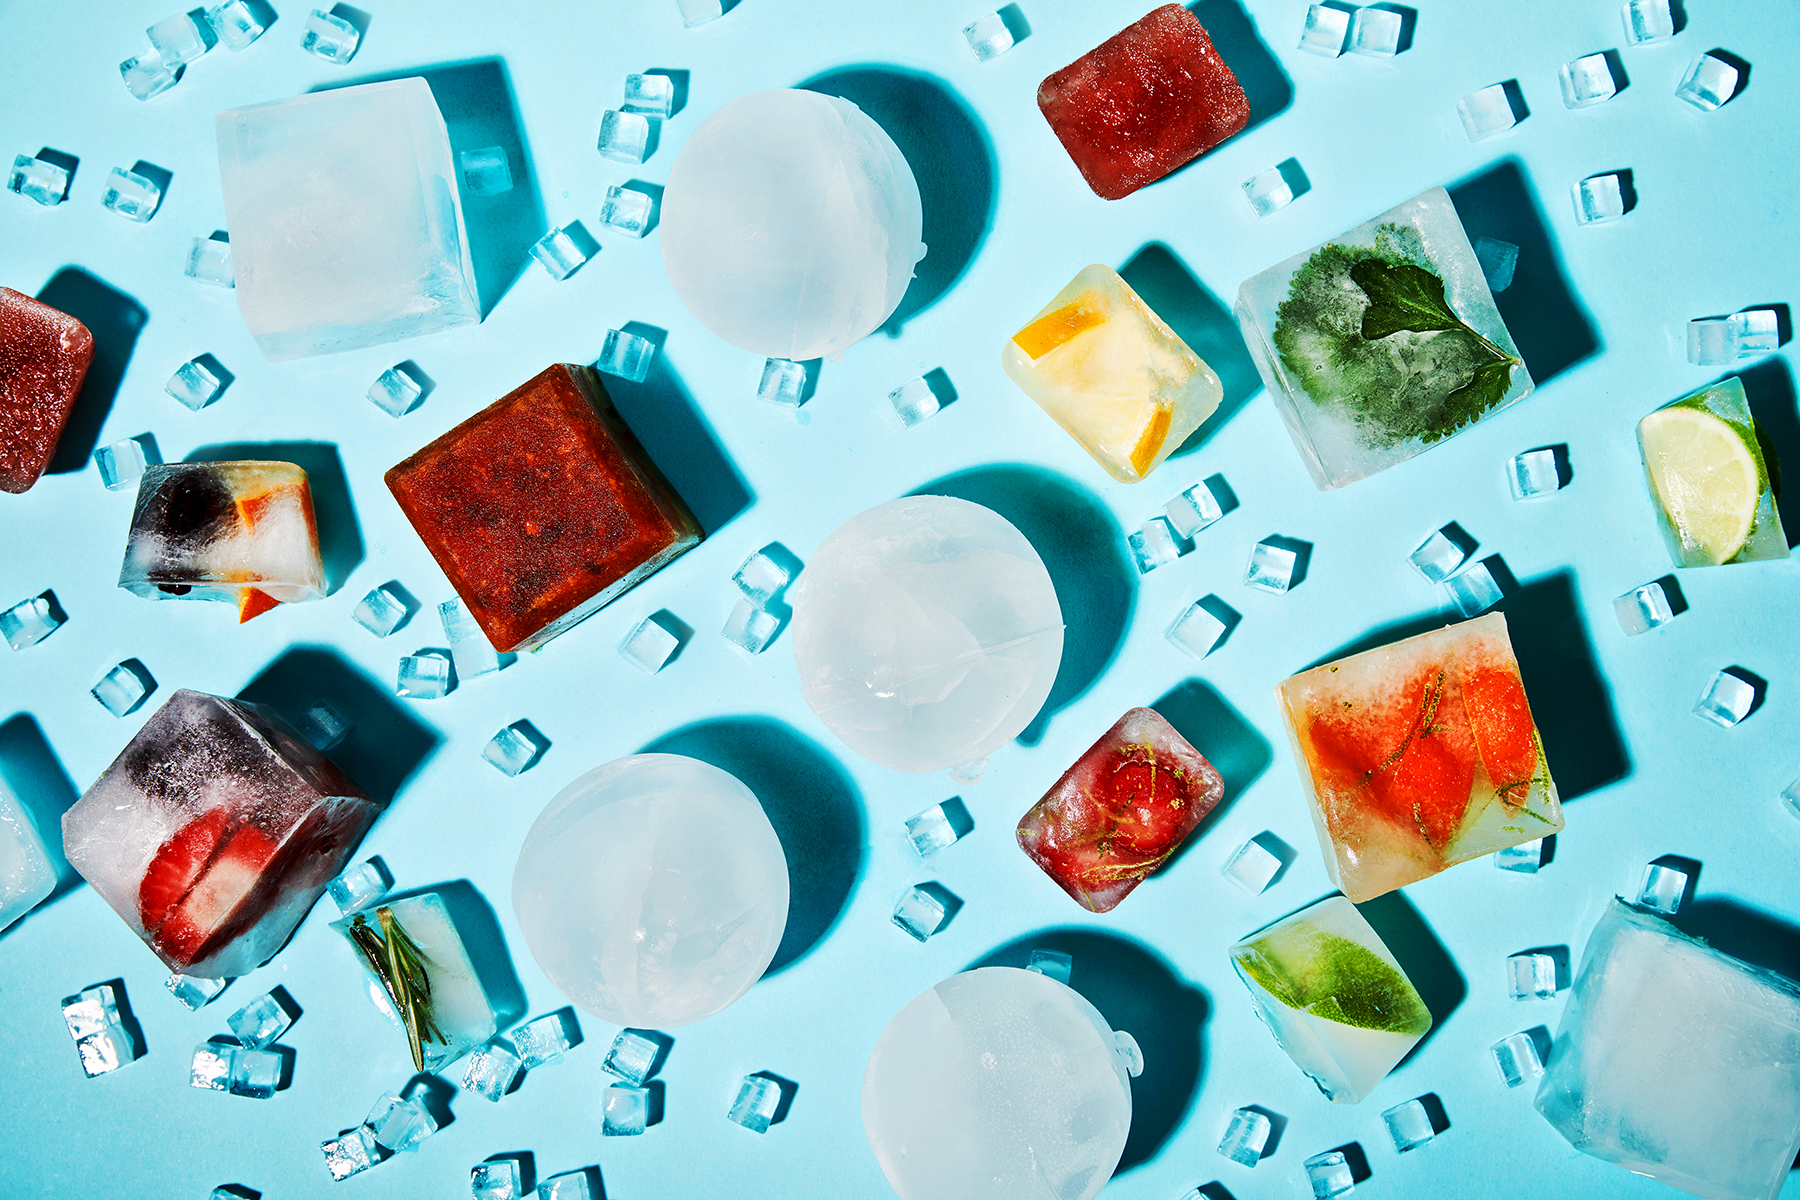 spherical ice cubes and infused ice cubes